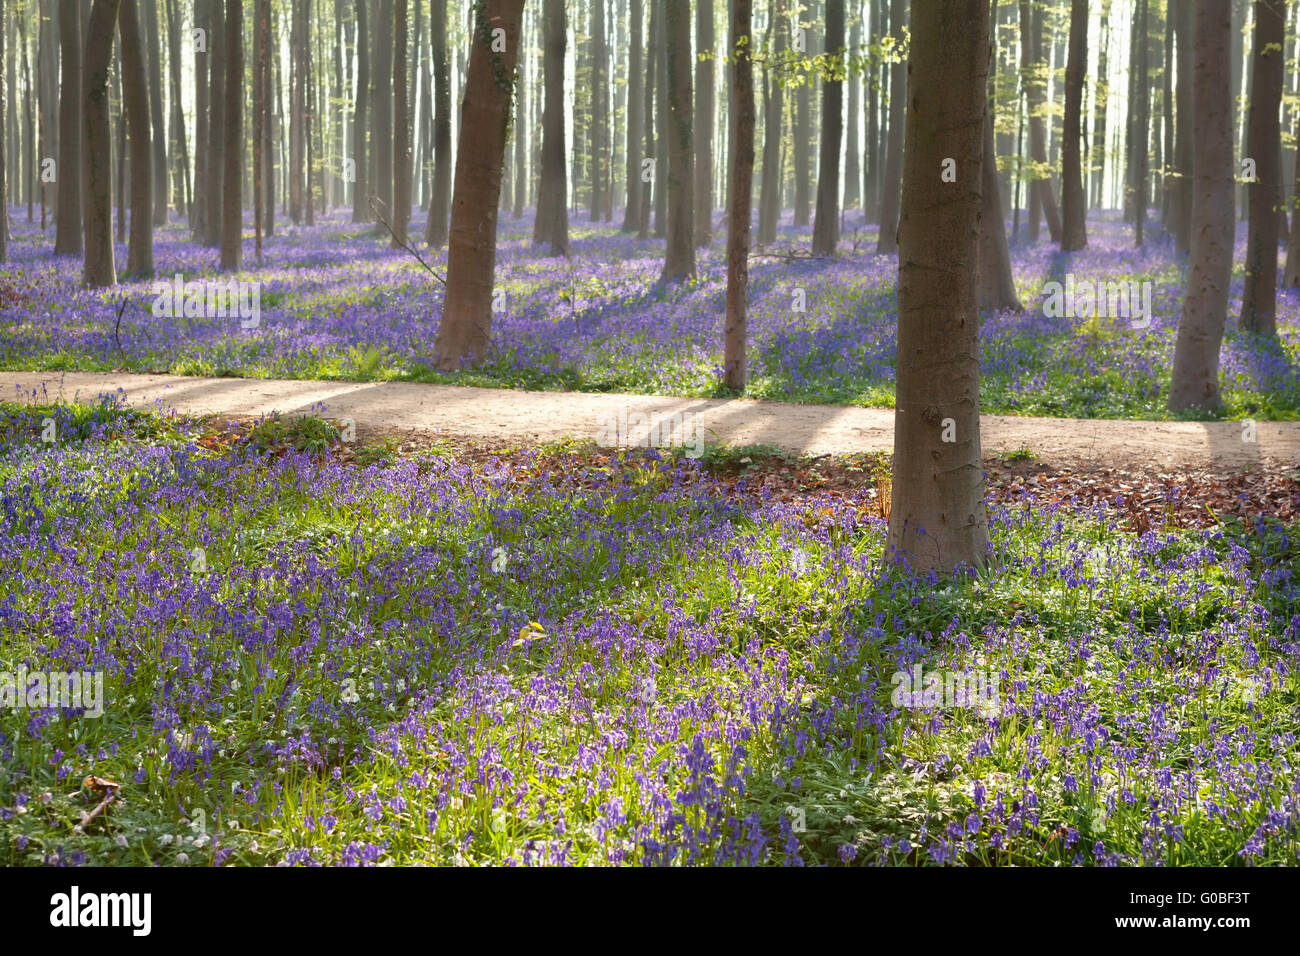 path in Halle forest with bluebell flowers, Belgium - Stock Image